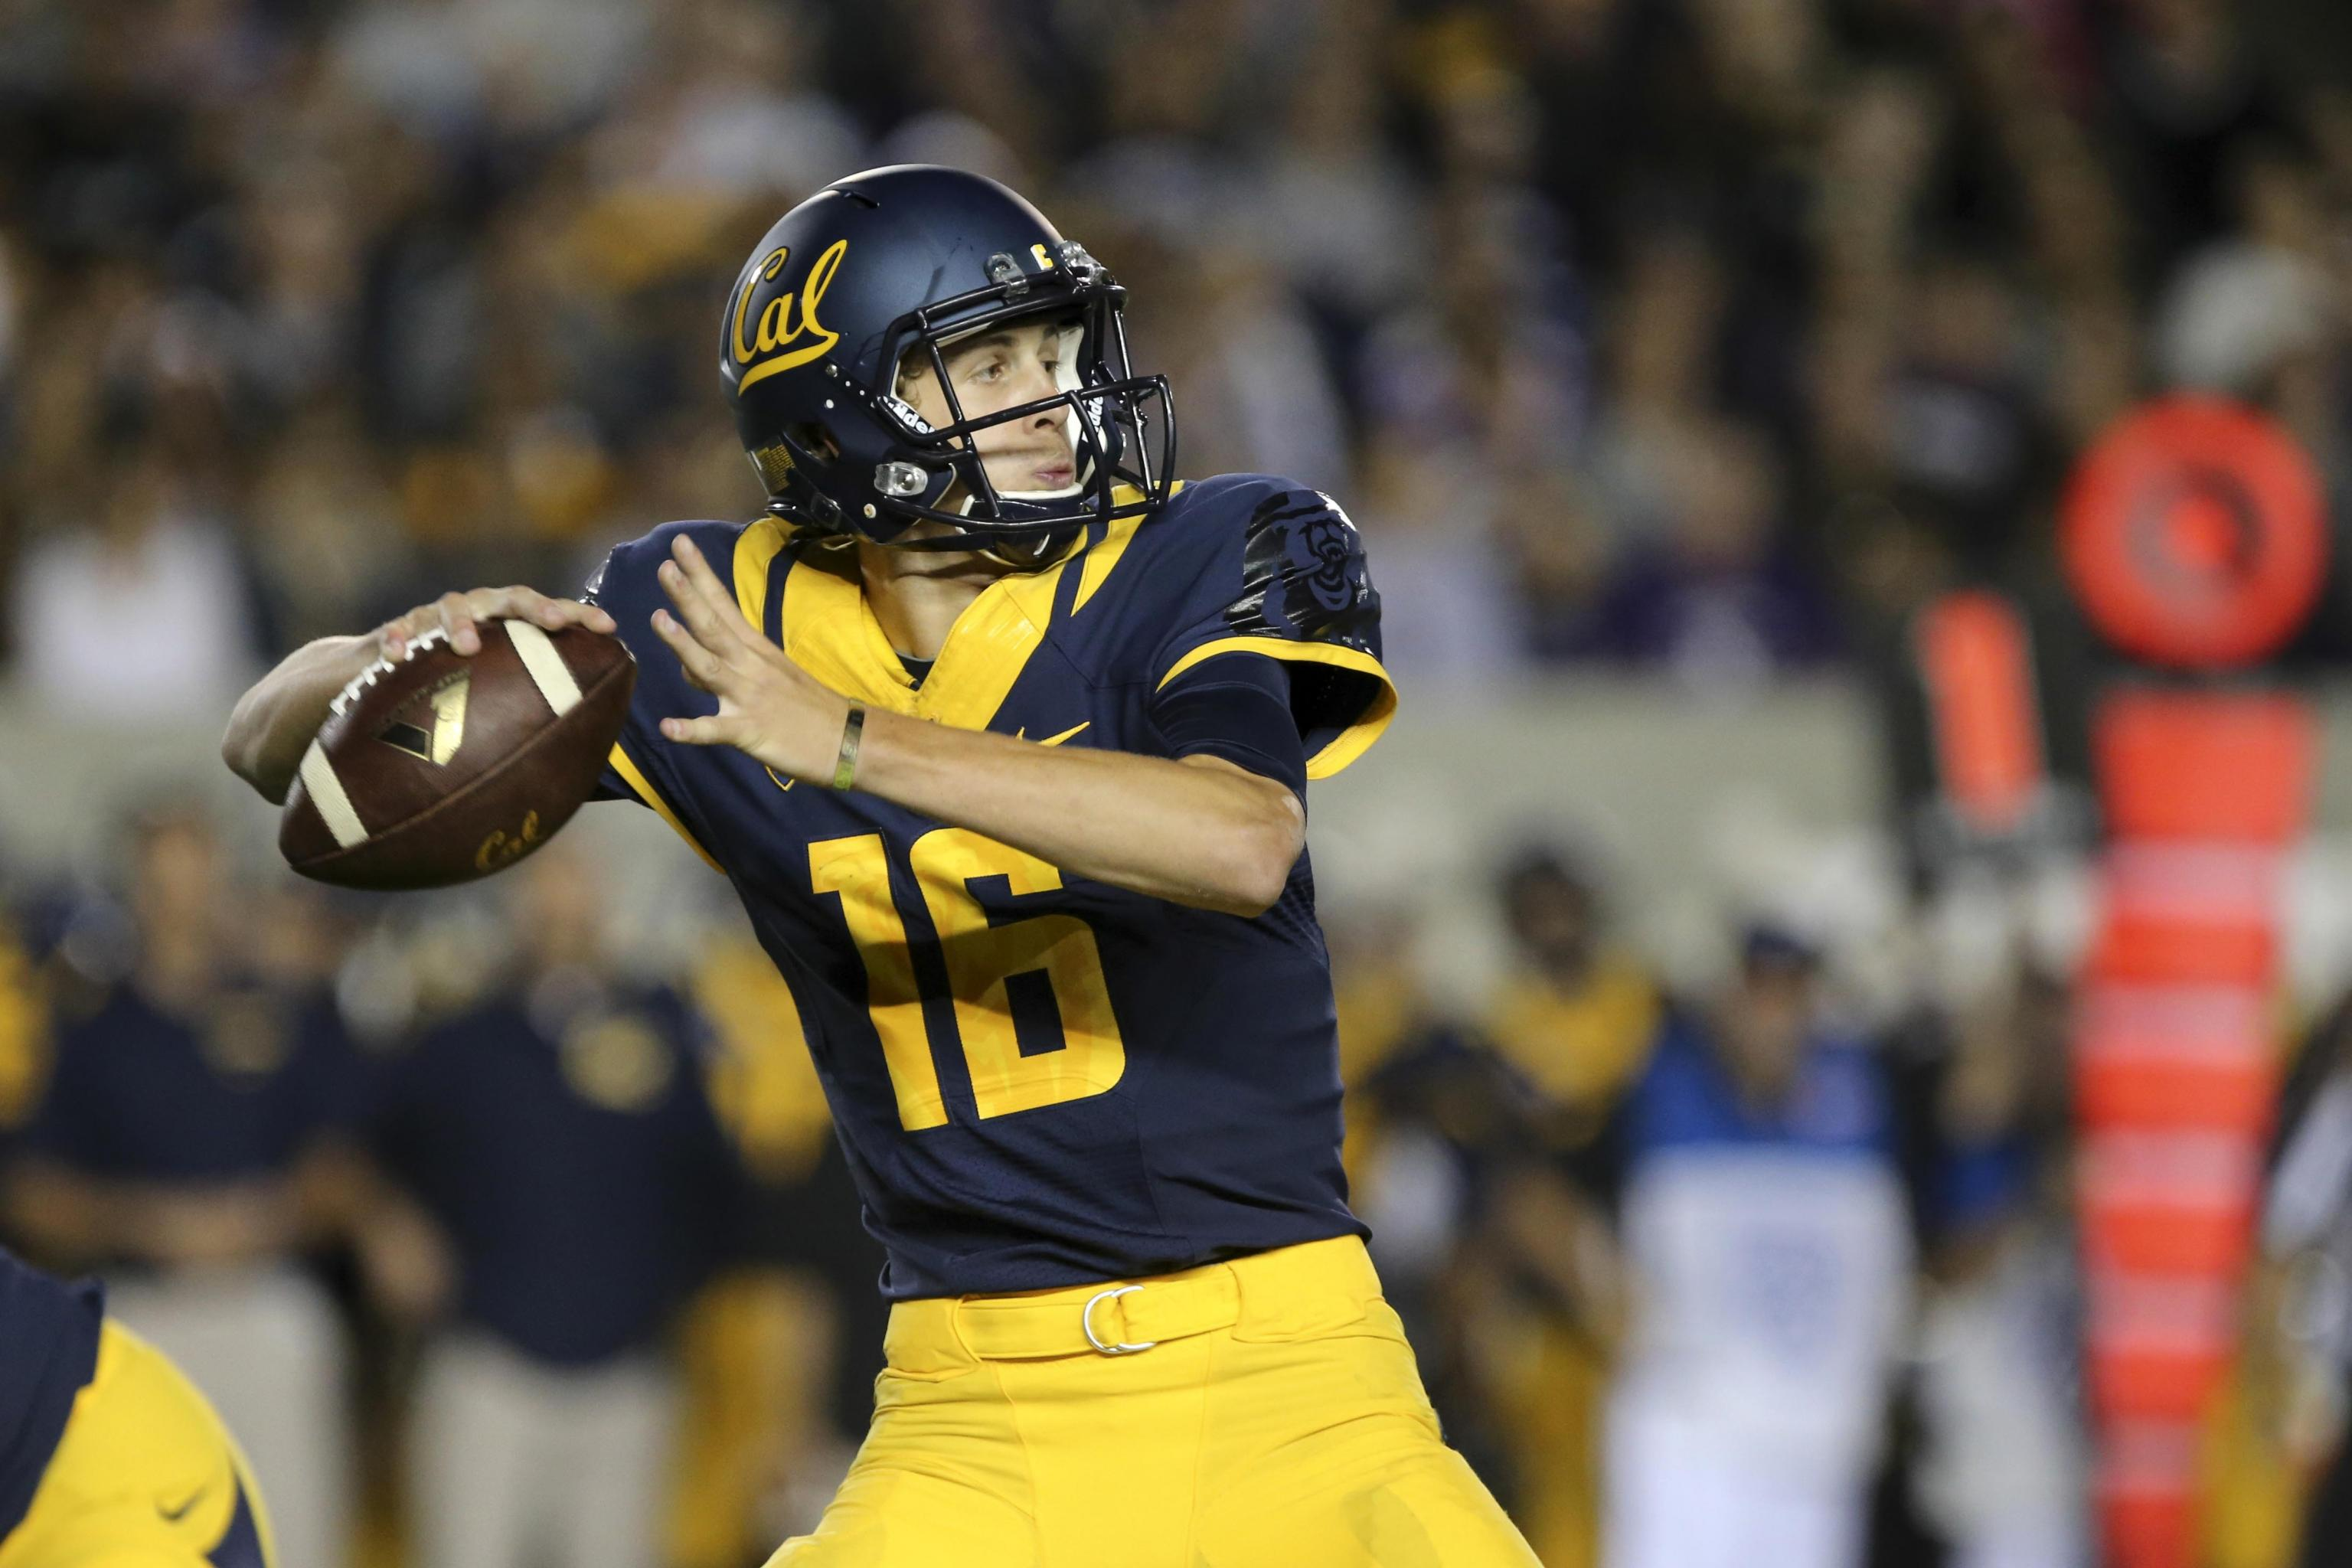 Ohio State Football Cal Qb Jared Goff Will Challenge Young Osu Defense Bleacher Report Latest News Videos And Highlights